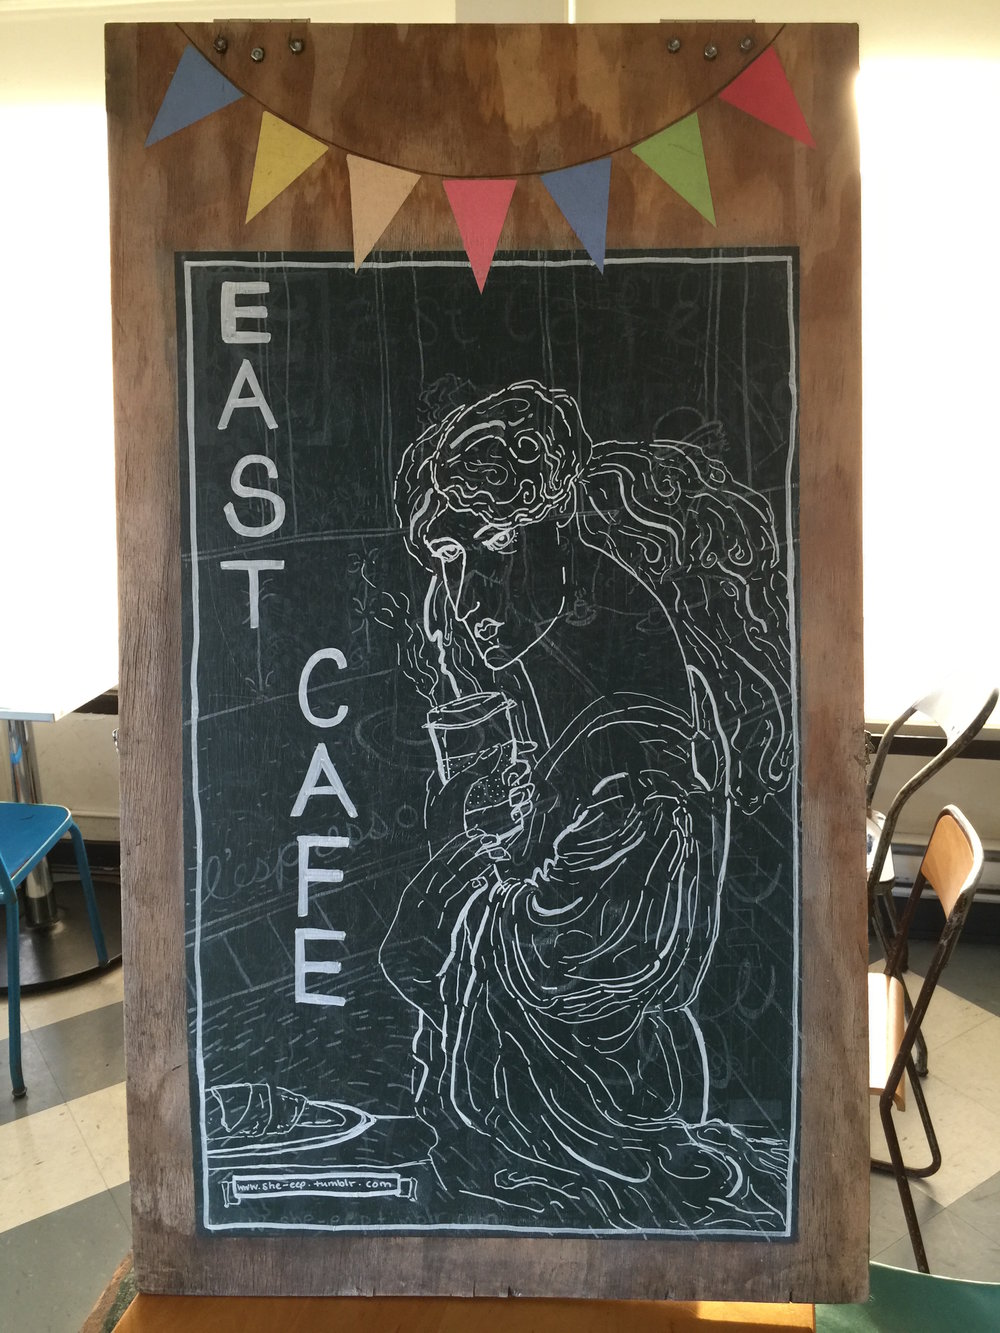 - Welcome to east cafe!  We're more than a cafe - we're a community. We're very honoured by the many customers and friends that call east cafe their place to go - a place to catch up with friends, study or just grab a great cup of coffee.